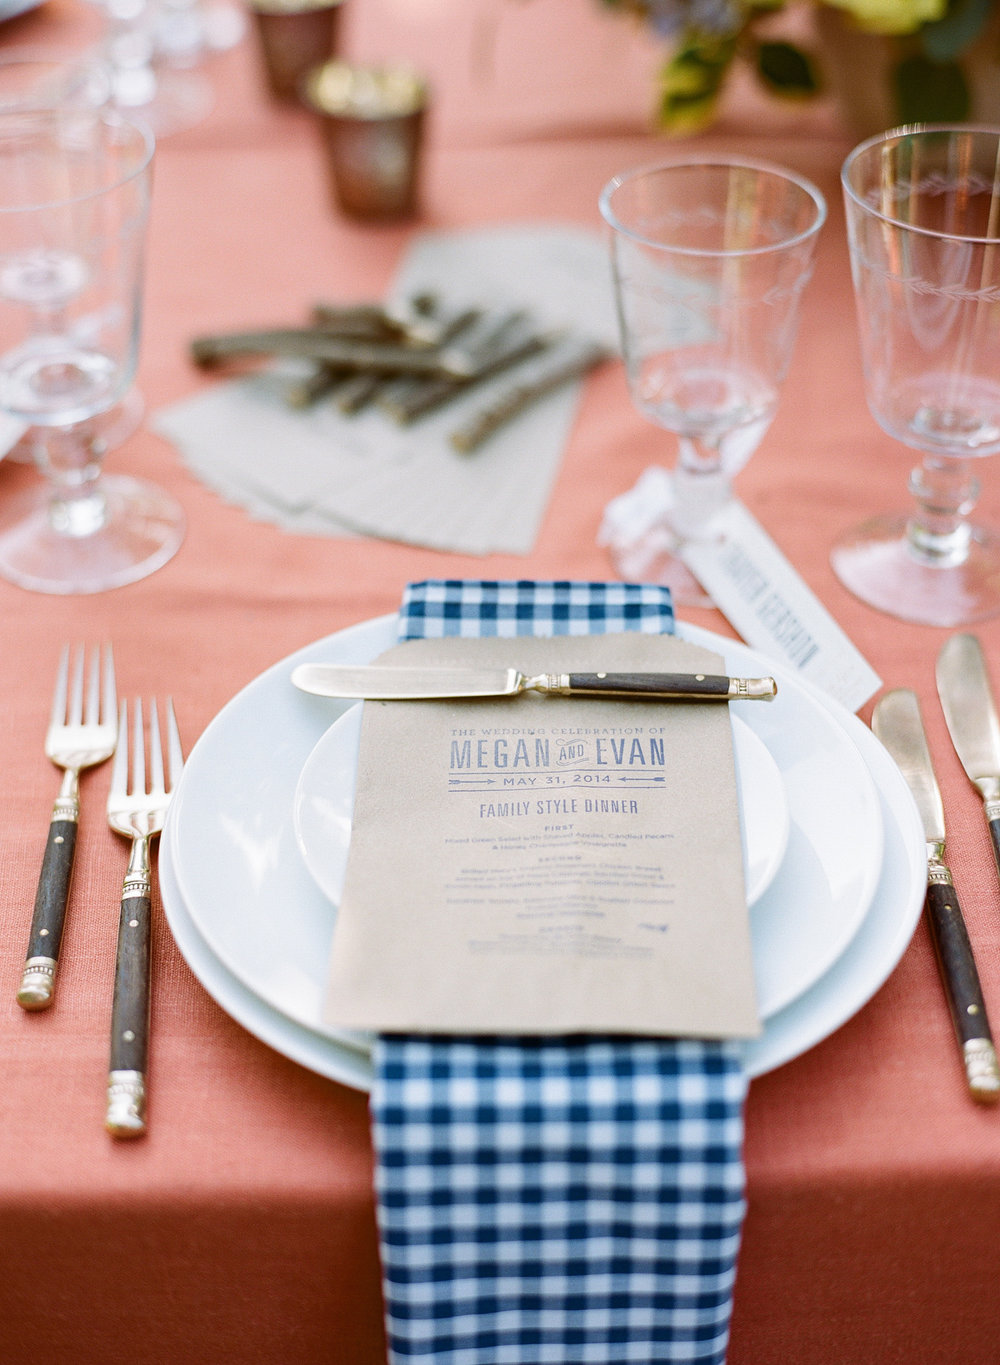 41-preppy-table-blue-gingham-napkins.jpg